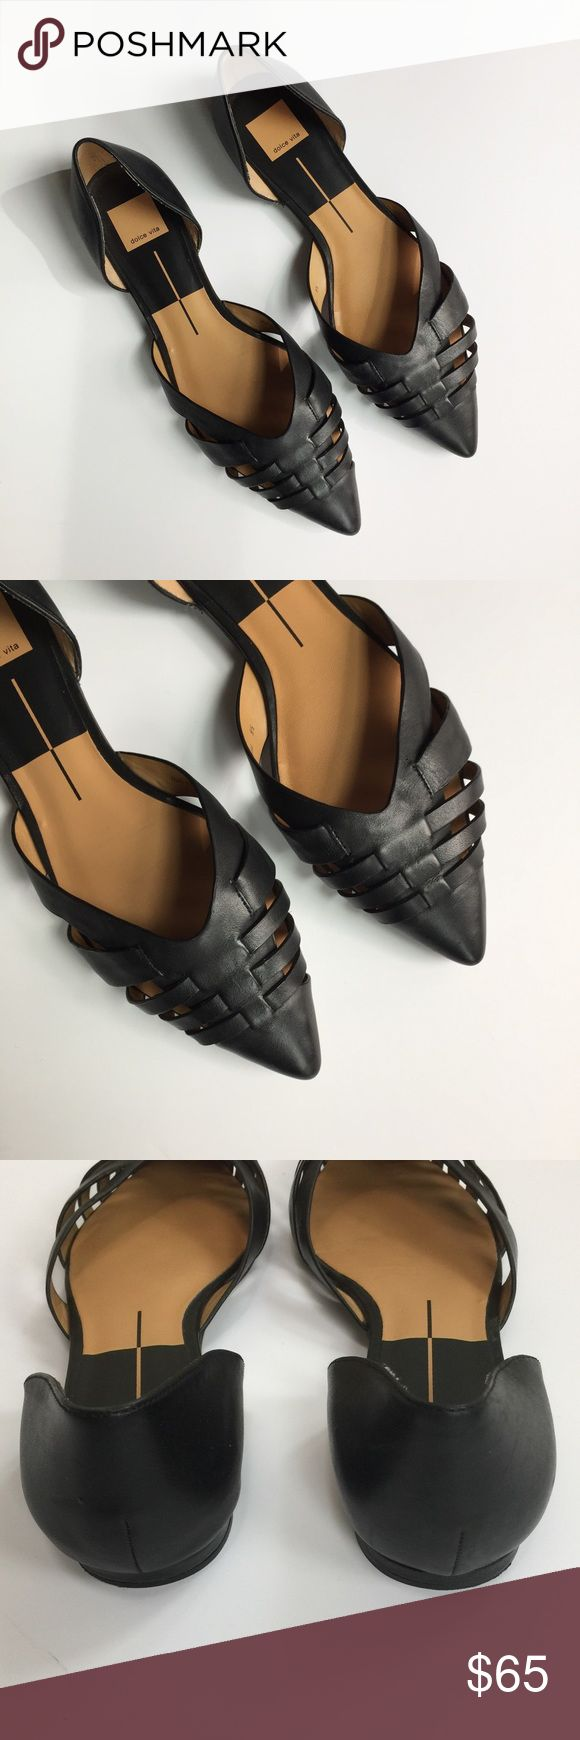 Dolce Vita Parklands Leather Pointed Toe Flats Dolce Vita Parklands Leather Pointed Toe Flats. Black leather. Woven front. Pointed Toe. Sold at Anthropologie. Stock tan photo is to show fit only. Minimal wear. A few minor scuffs. Dolce Vita Shoes Flats & Loafers